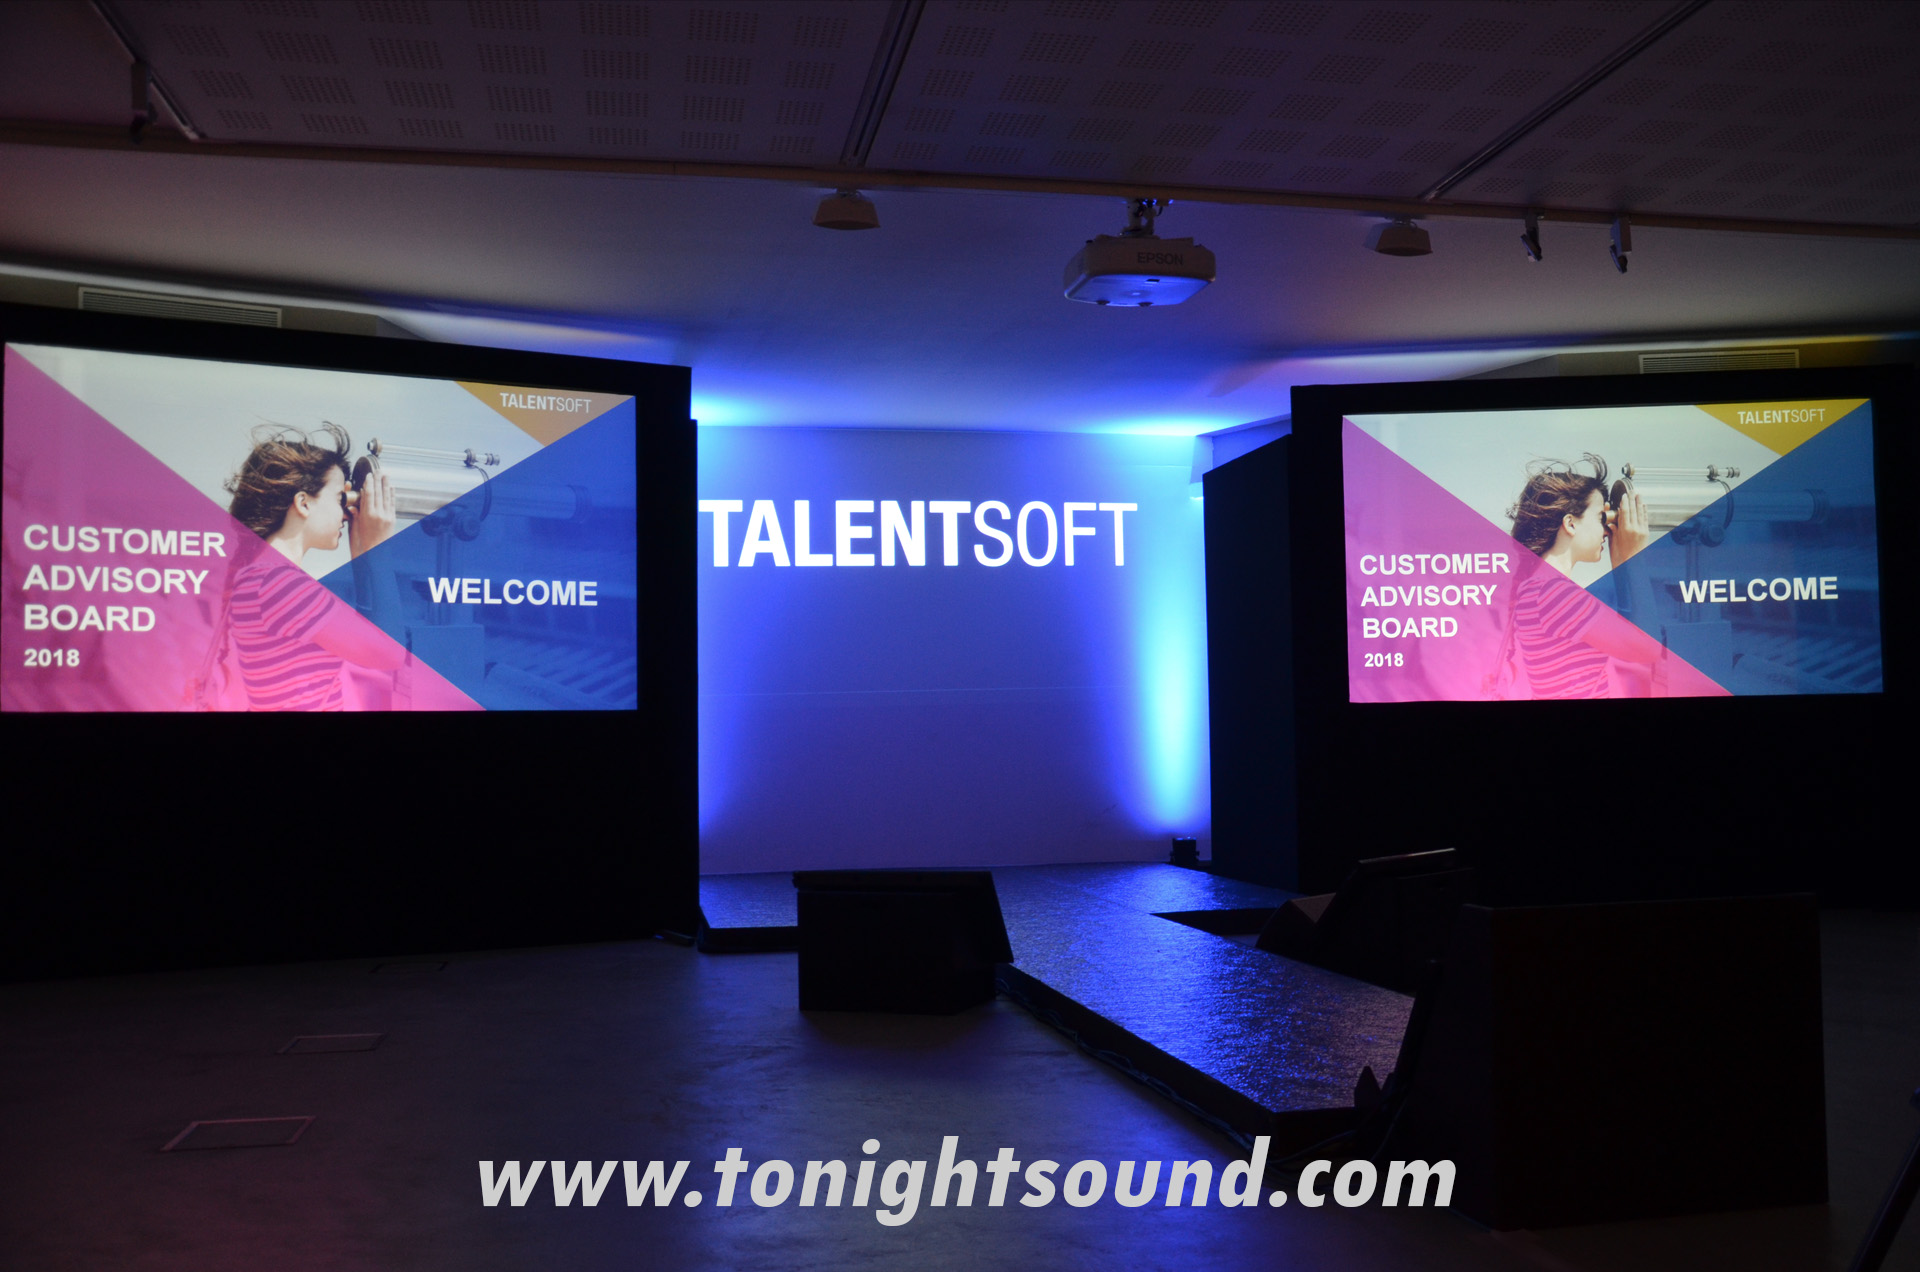 TONIGHTSOUND_SLIDE_21-talentsoft